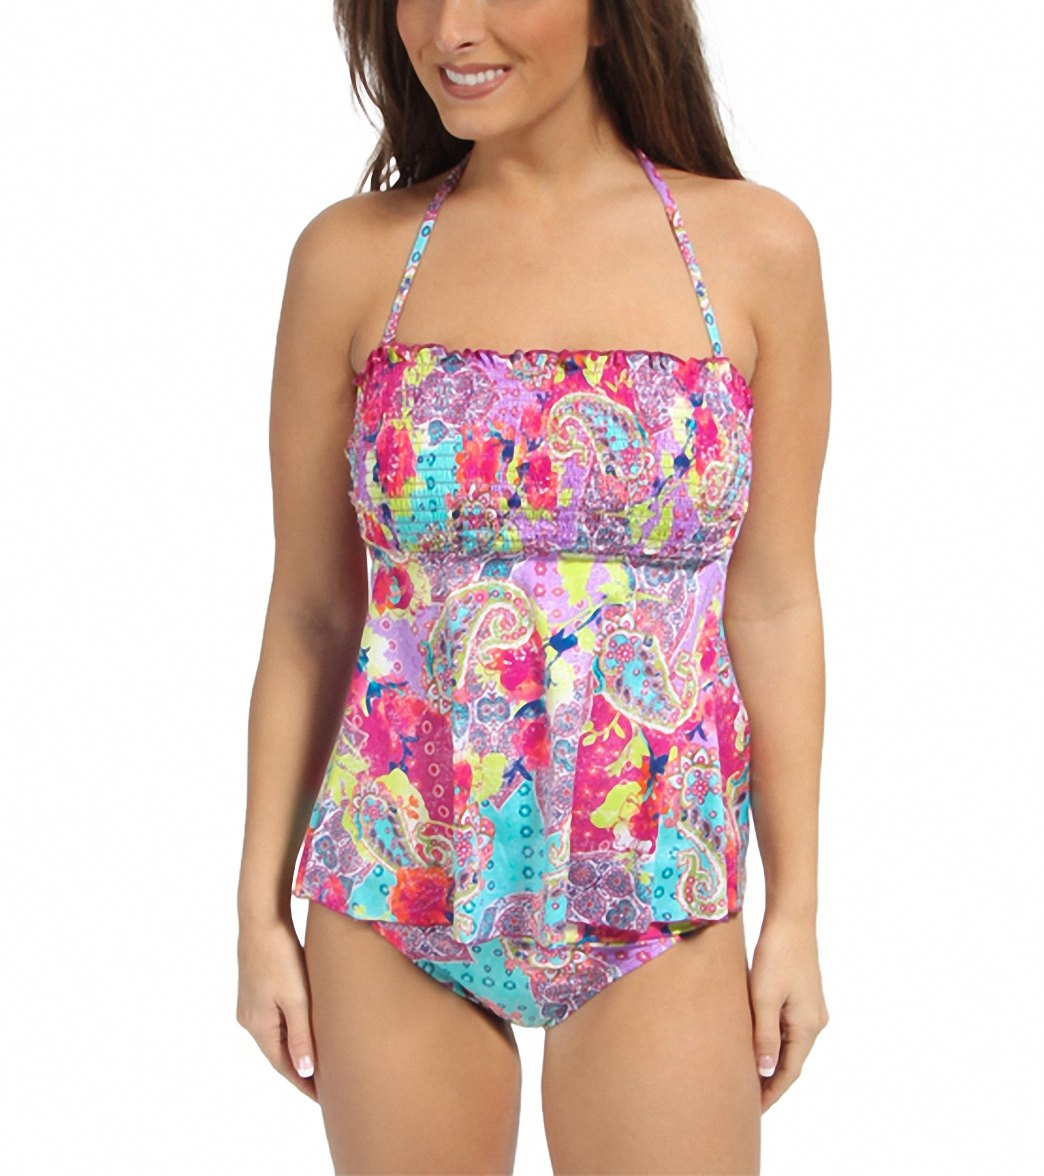 47970610b5 Kenneth Cole Modern Gypsy Smocked Tankini Top at SwimOutlet.com ...